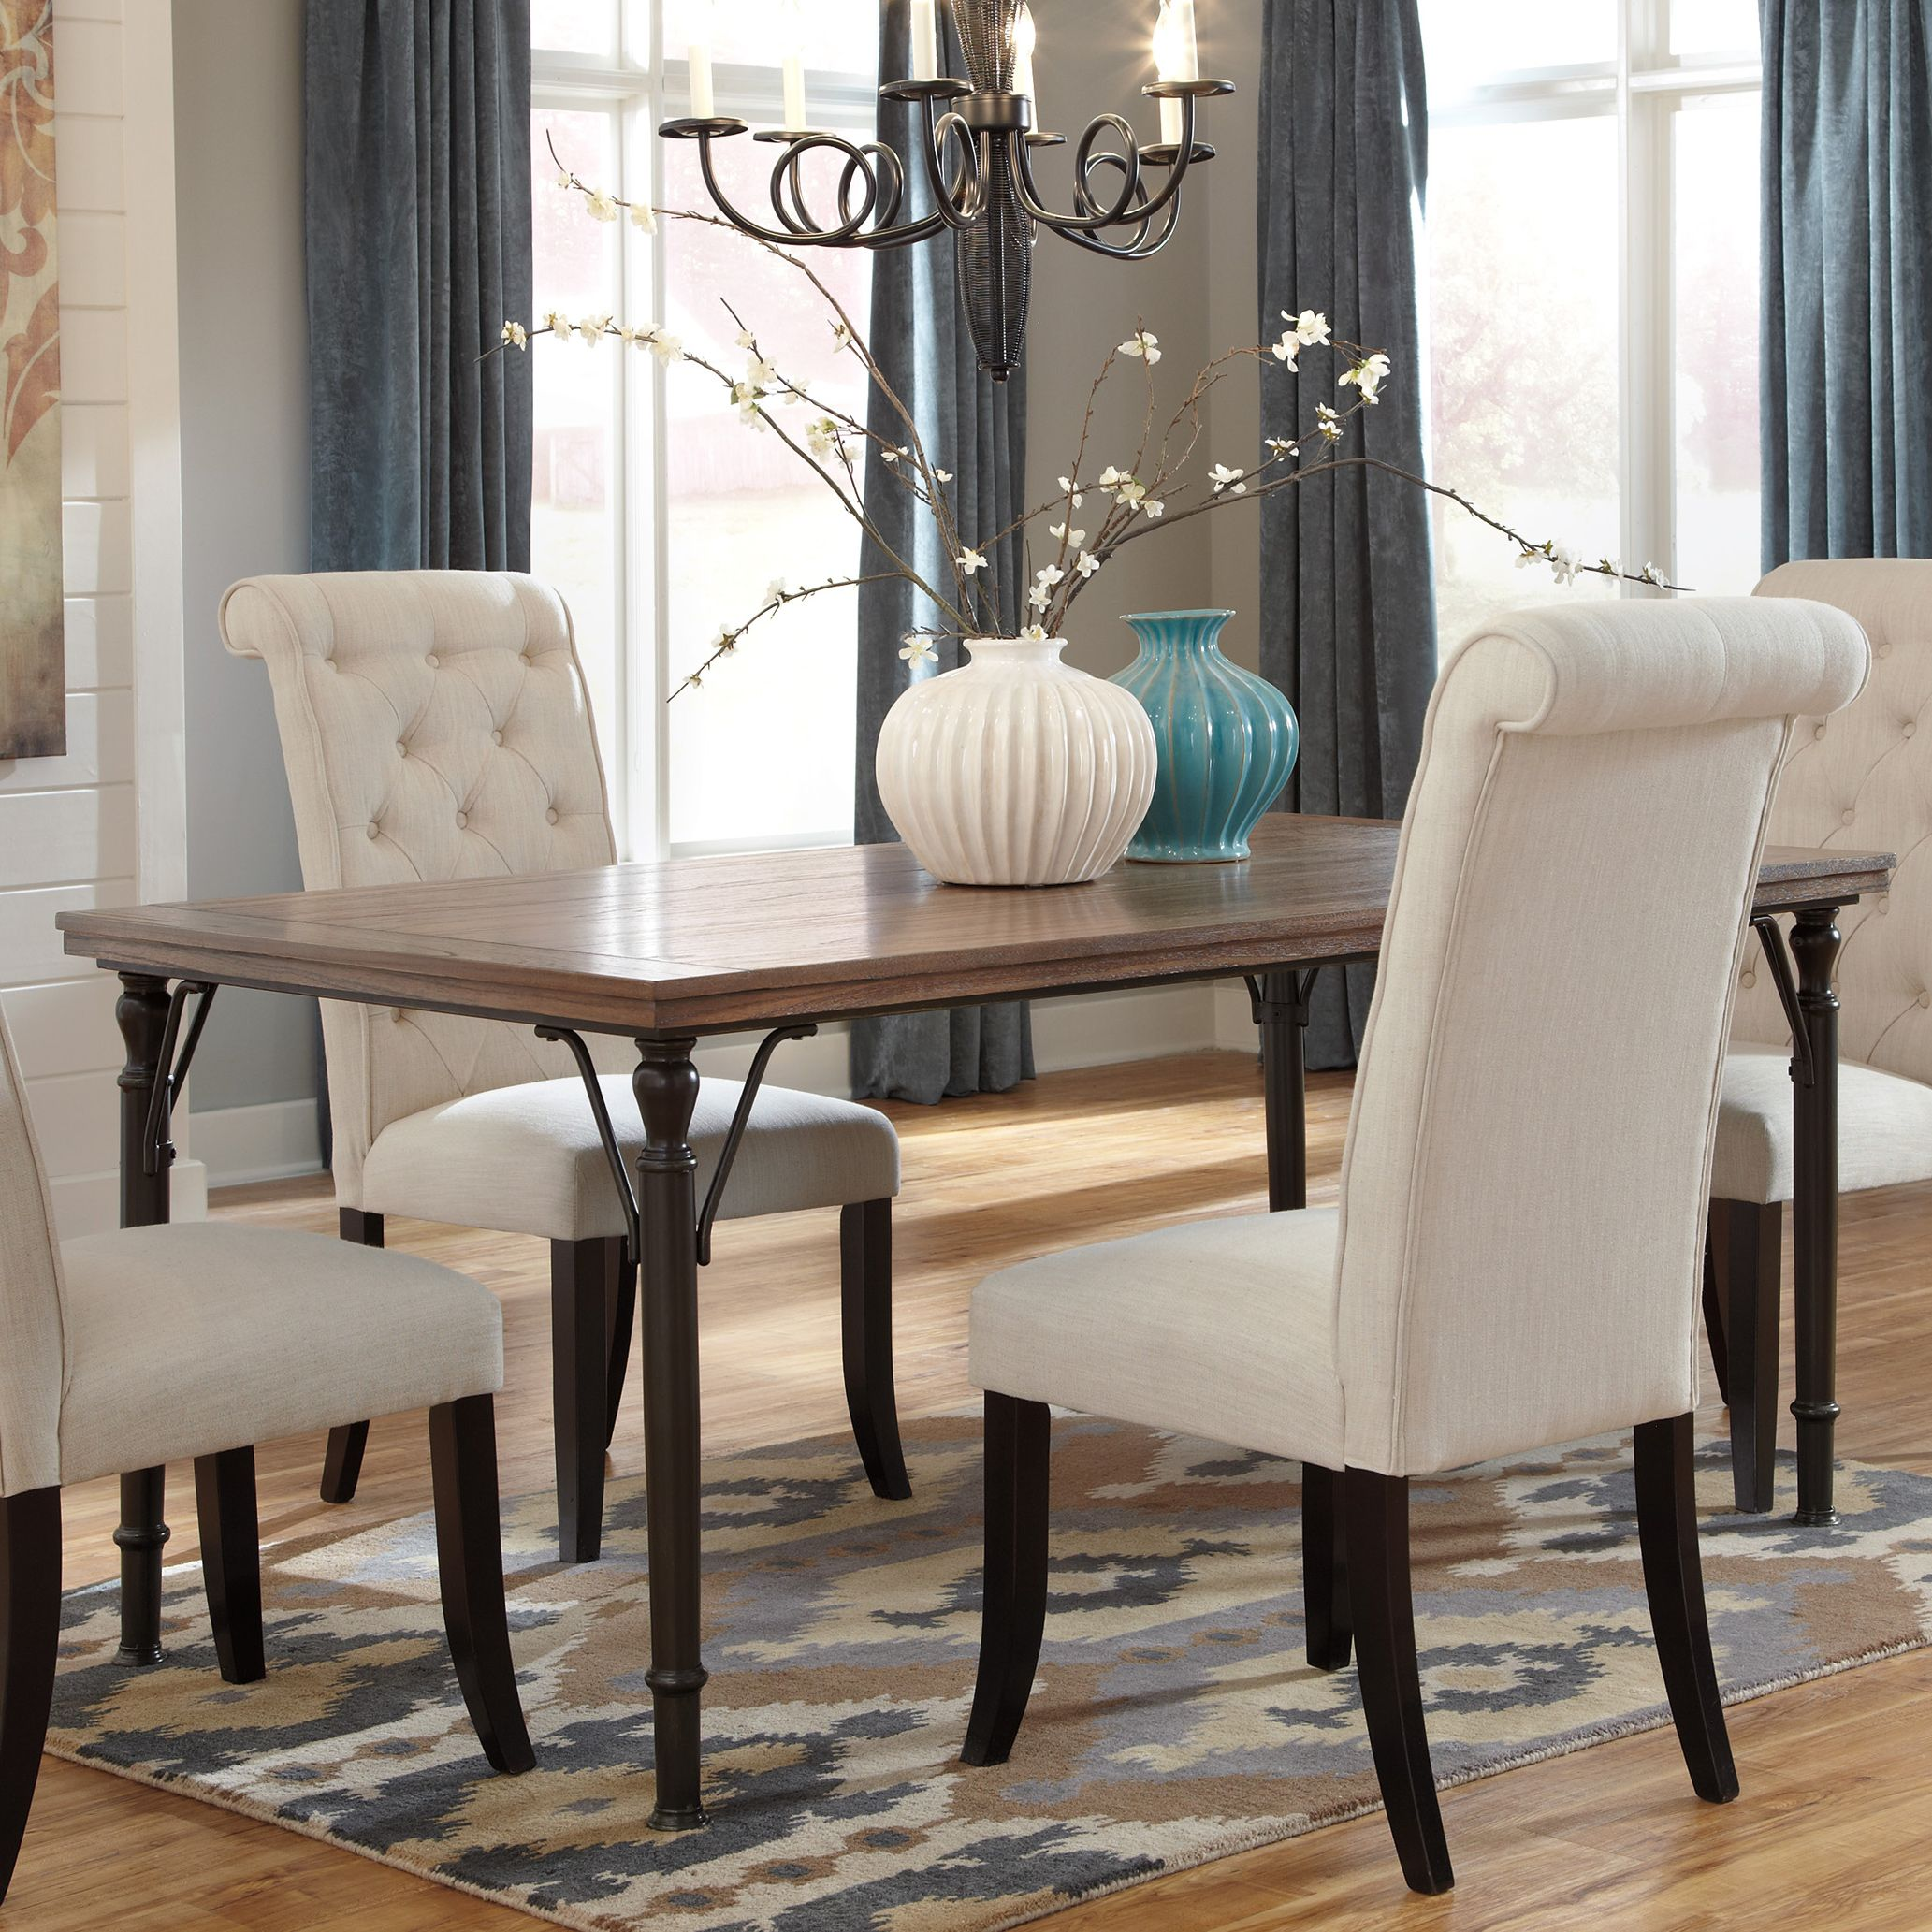 Signature Design By Ashley Tripton Rectangular Dining Room Table | Overstock™  Shopping   Great Deals On Signature Design By Ashley Dining Tables